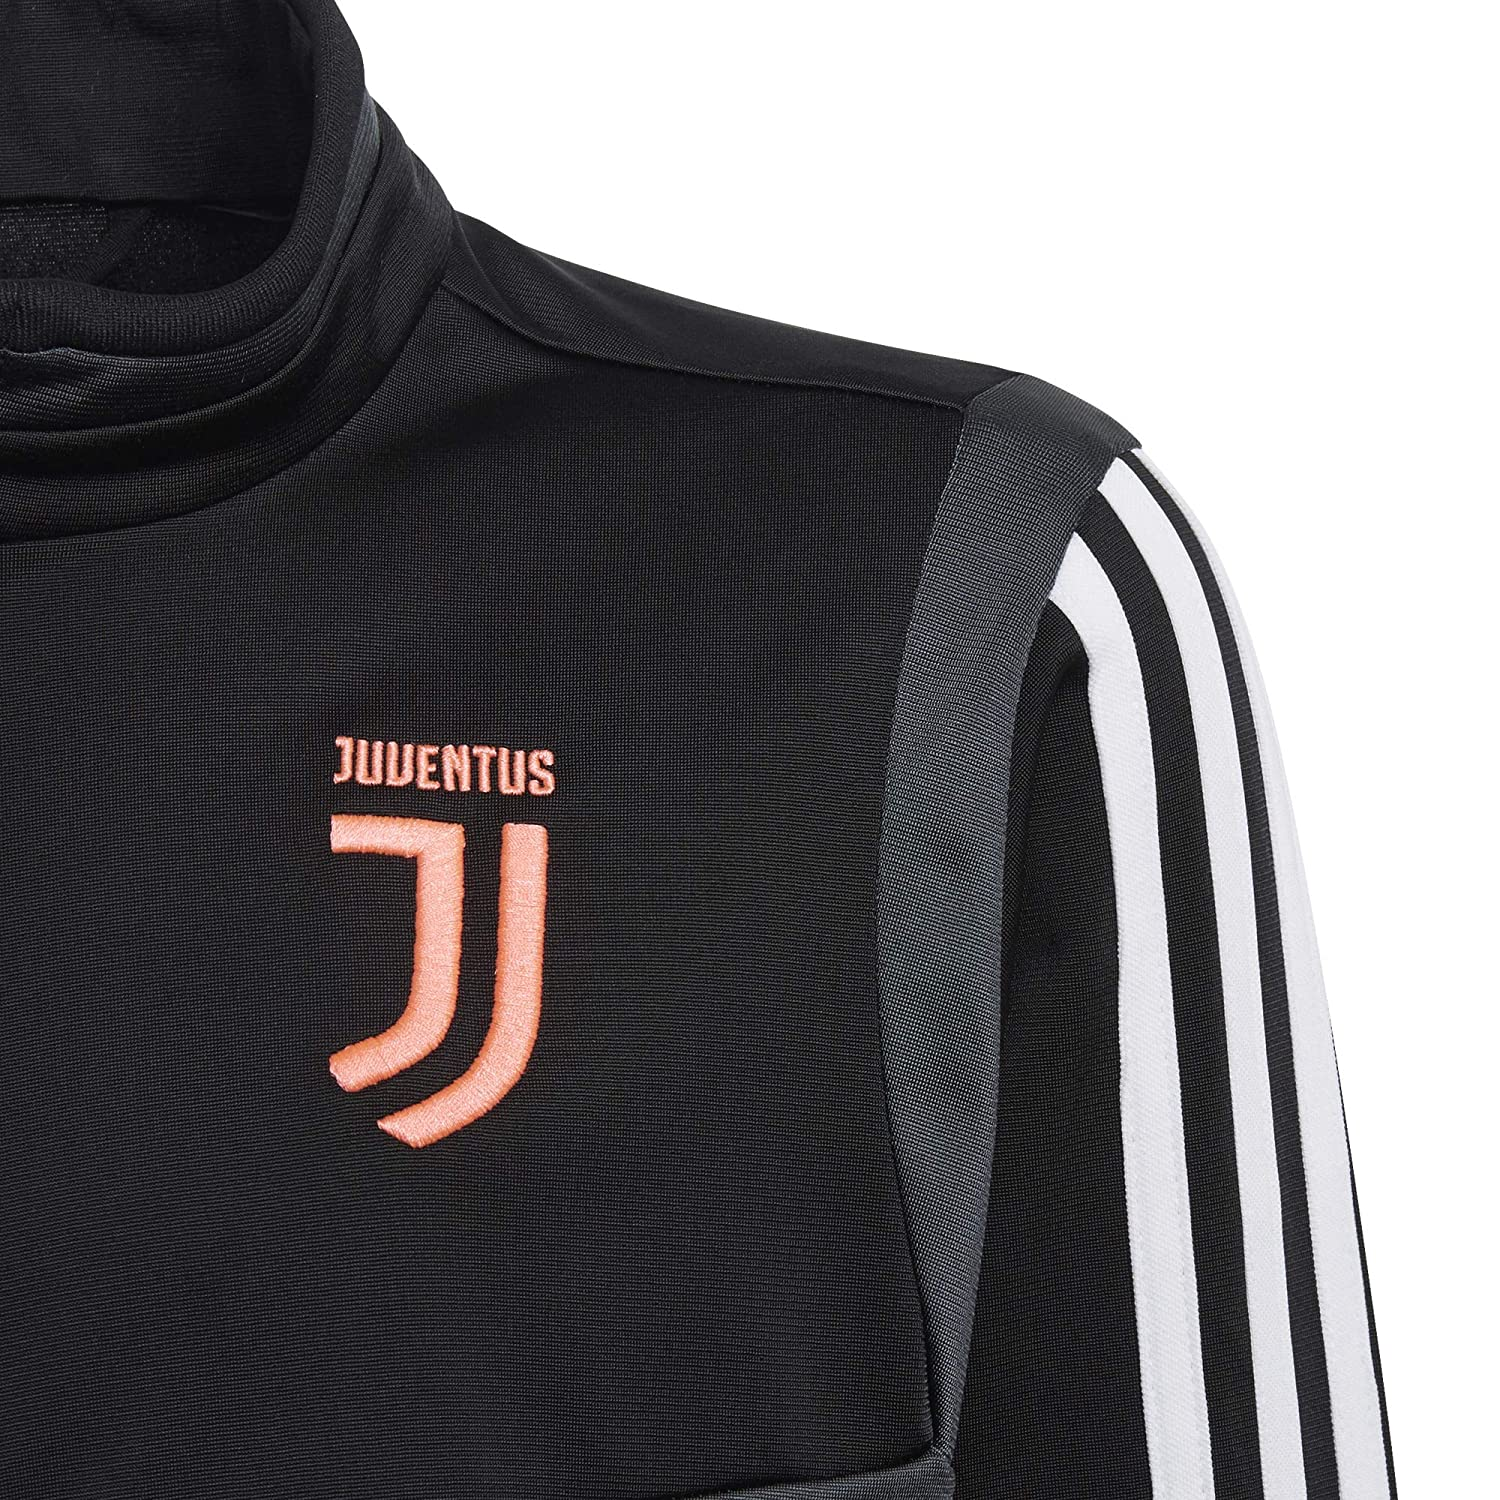 adidas 1920 Juventus Polyester Suit Youth Suits, Unisex